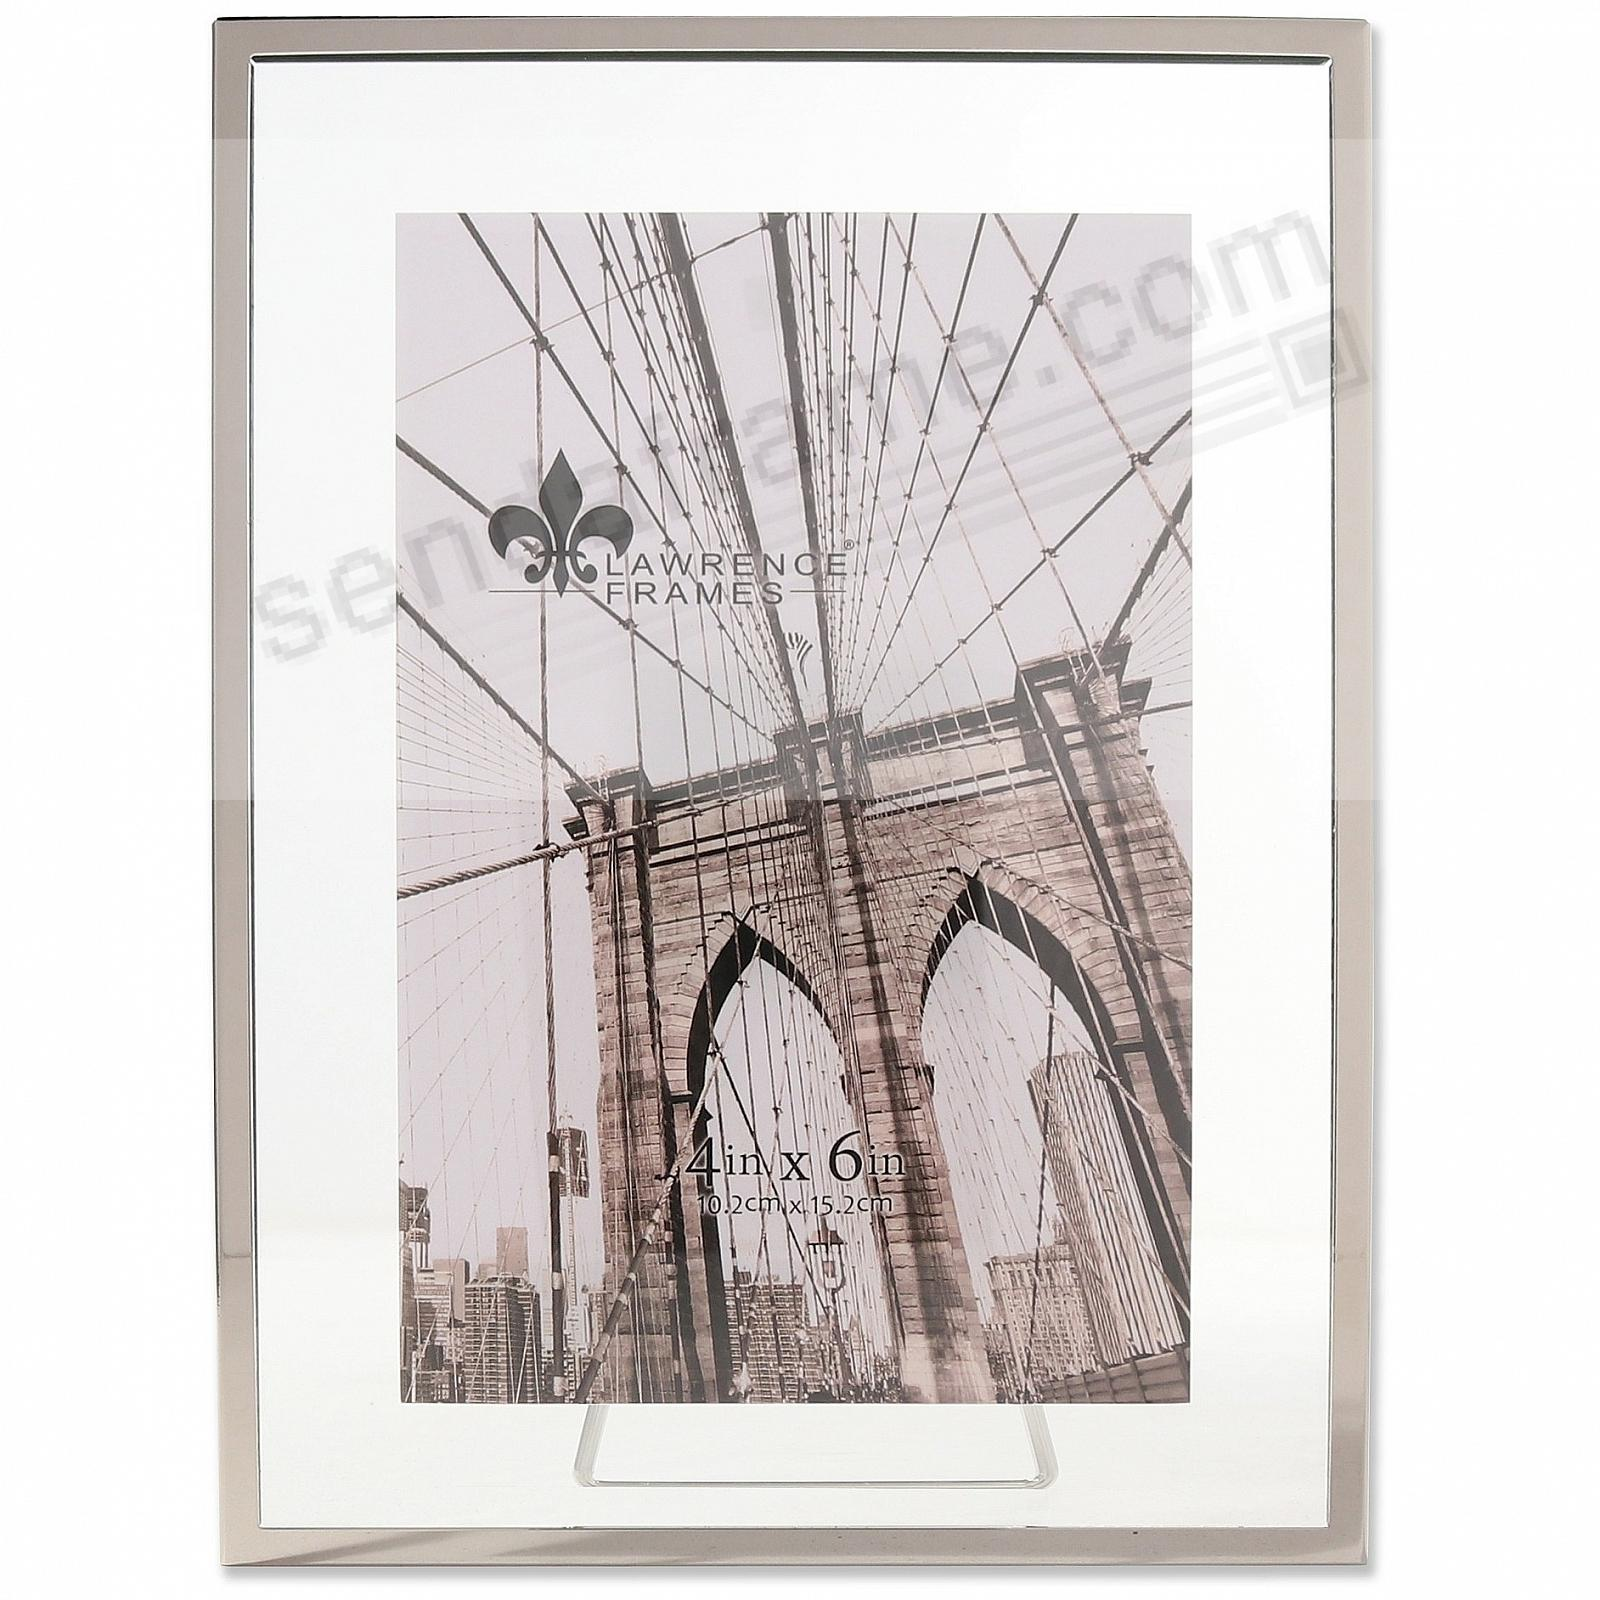 GARETT SILVER Metal Float 4x6 Frame by Lawrence®